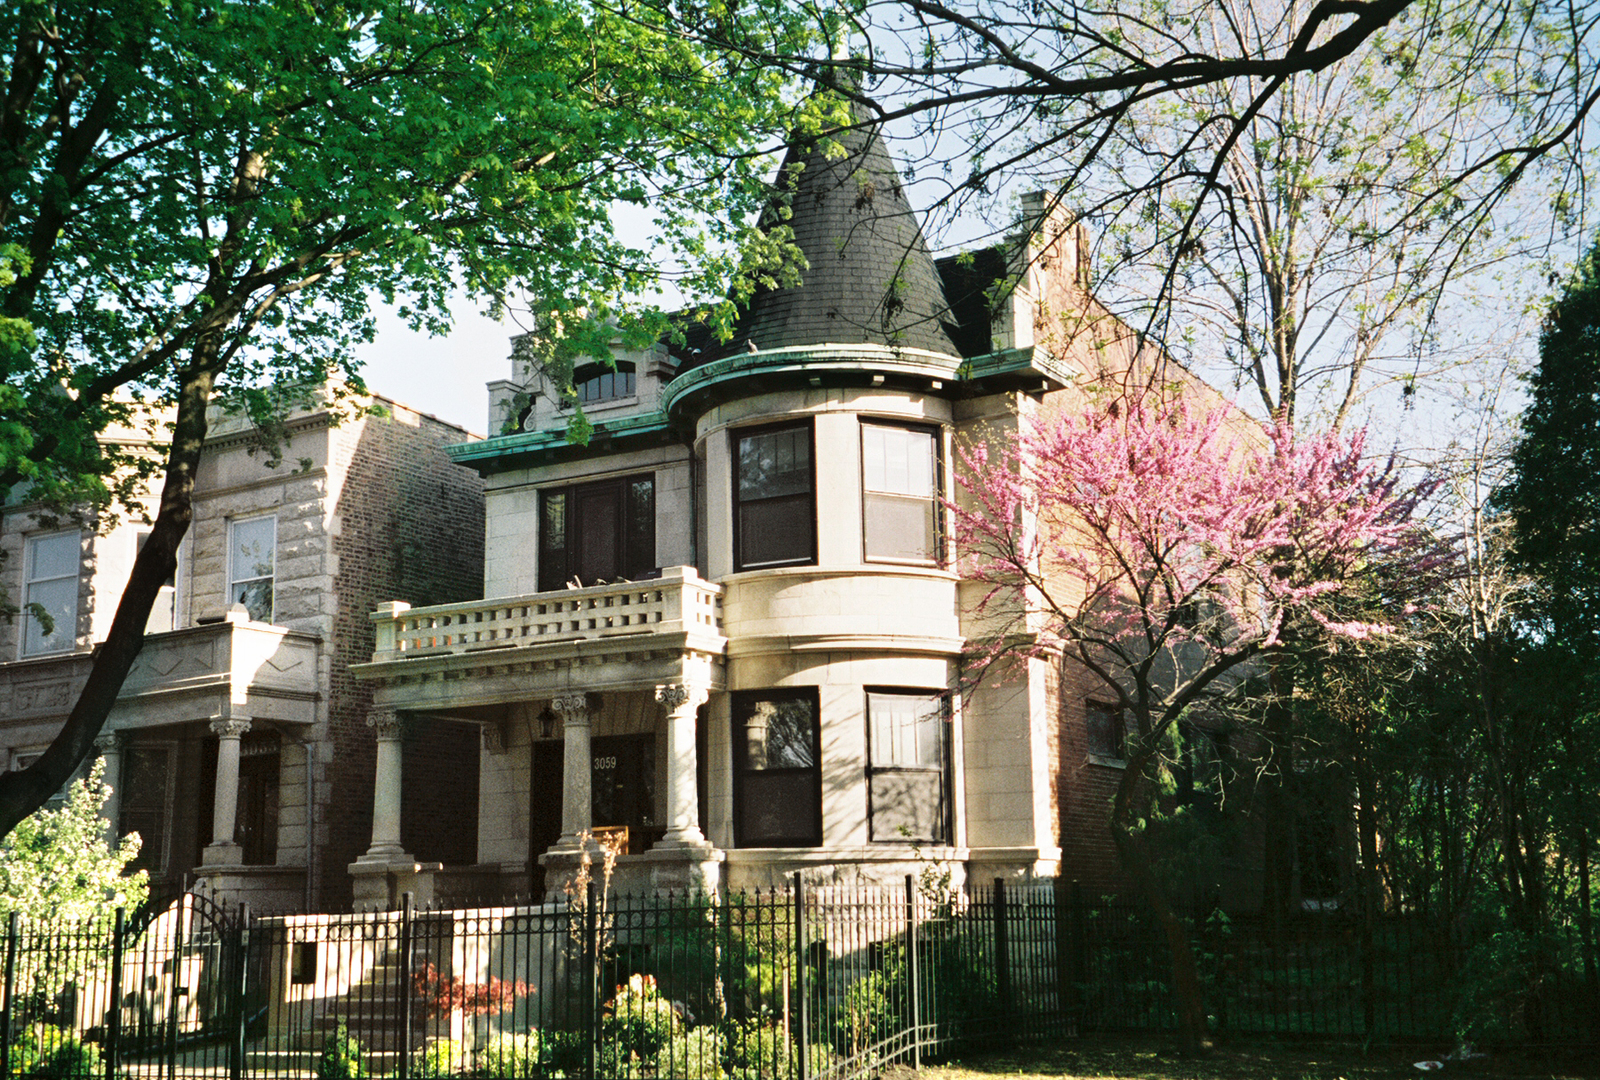 9 House in Logan Square